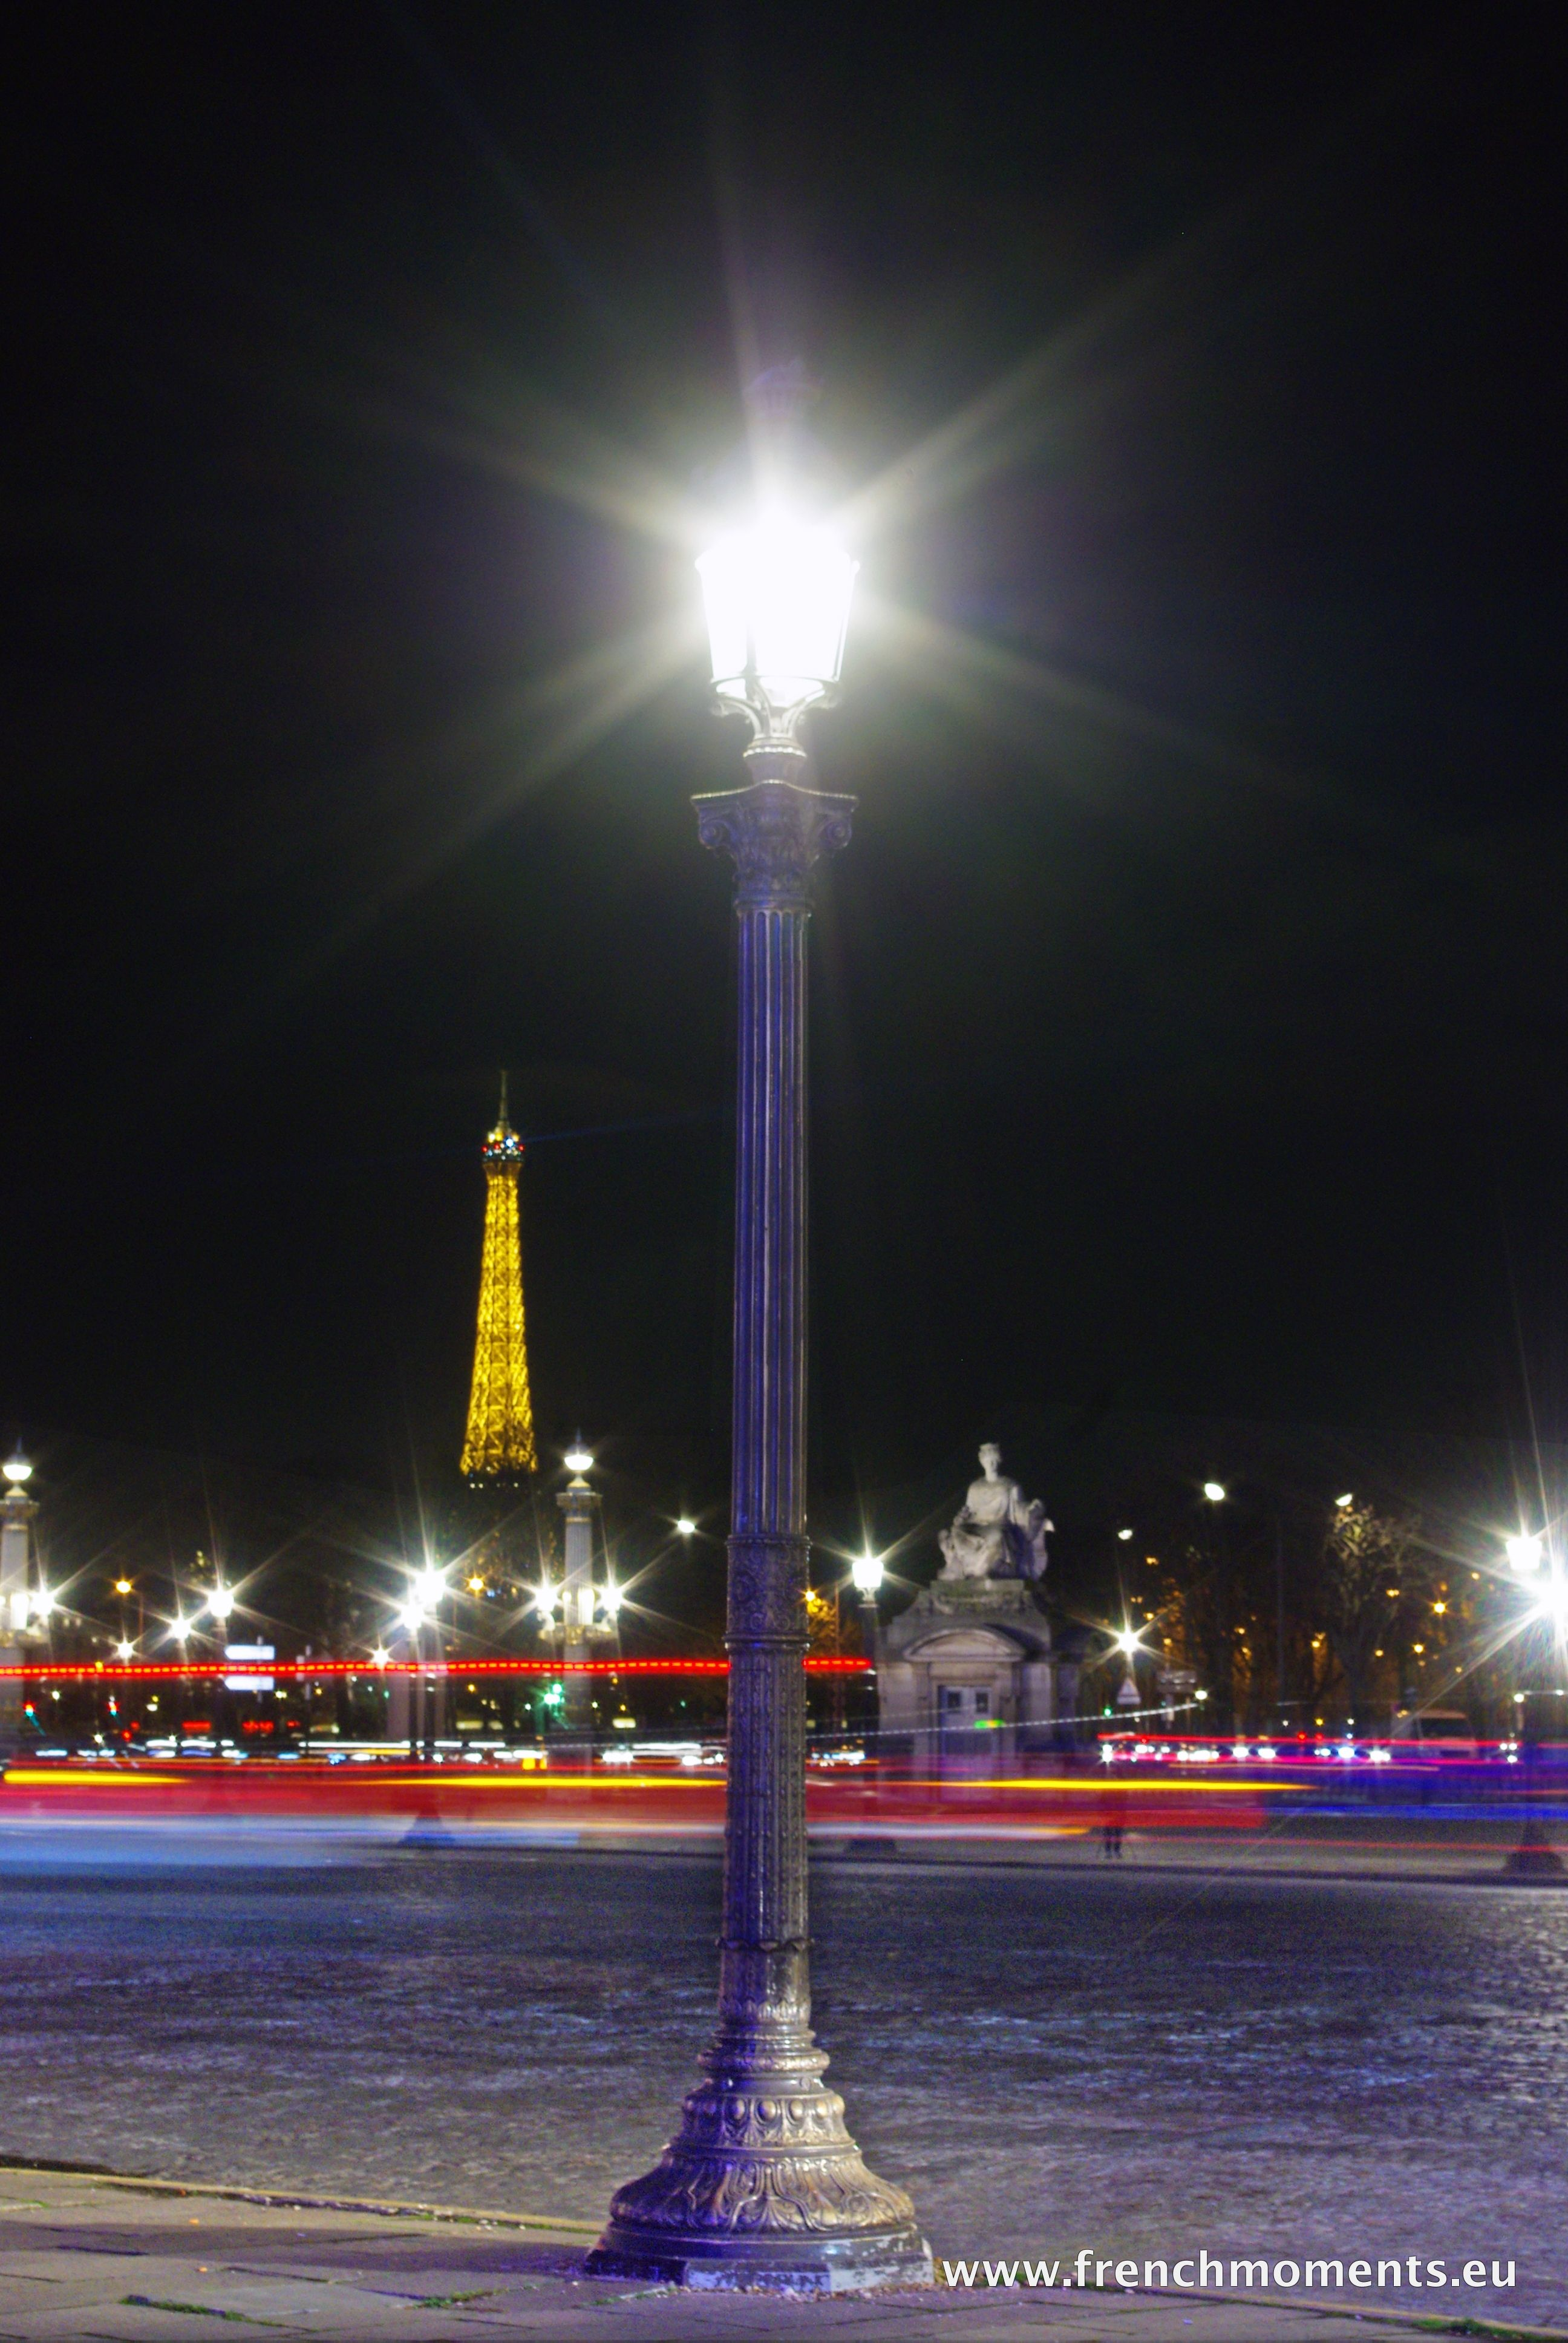 This Is Place De La Concorde With The Eiffel Tower In Distance A Photo We Took Few Nights Ago Bonne Nuit